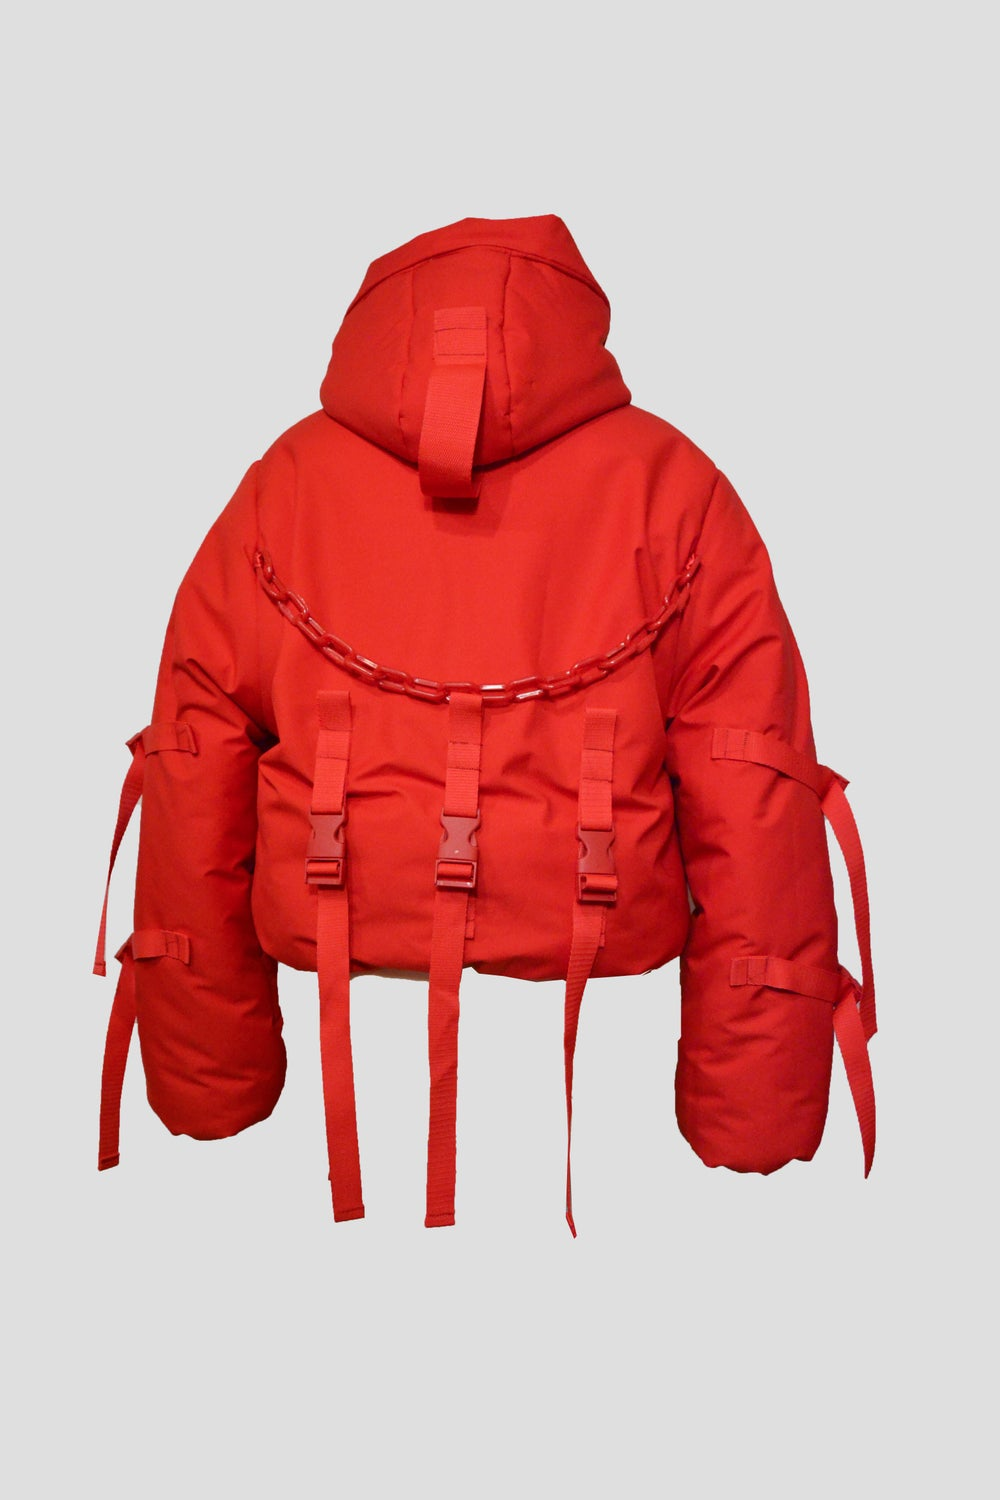 Image of Red puffy jacket